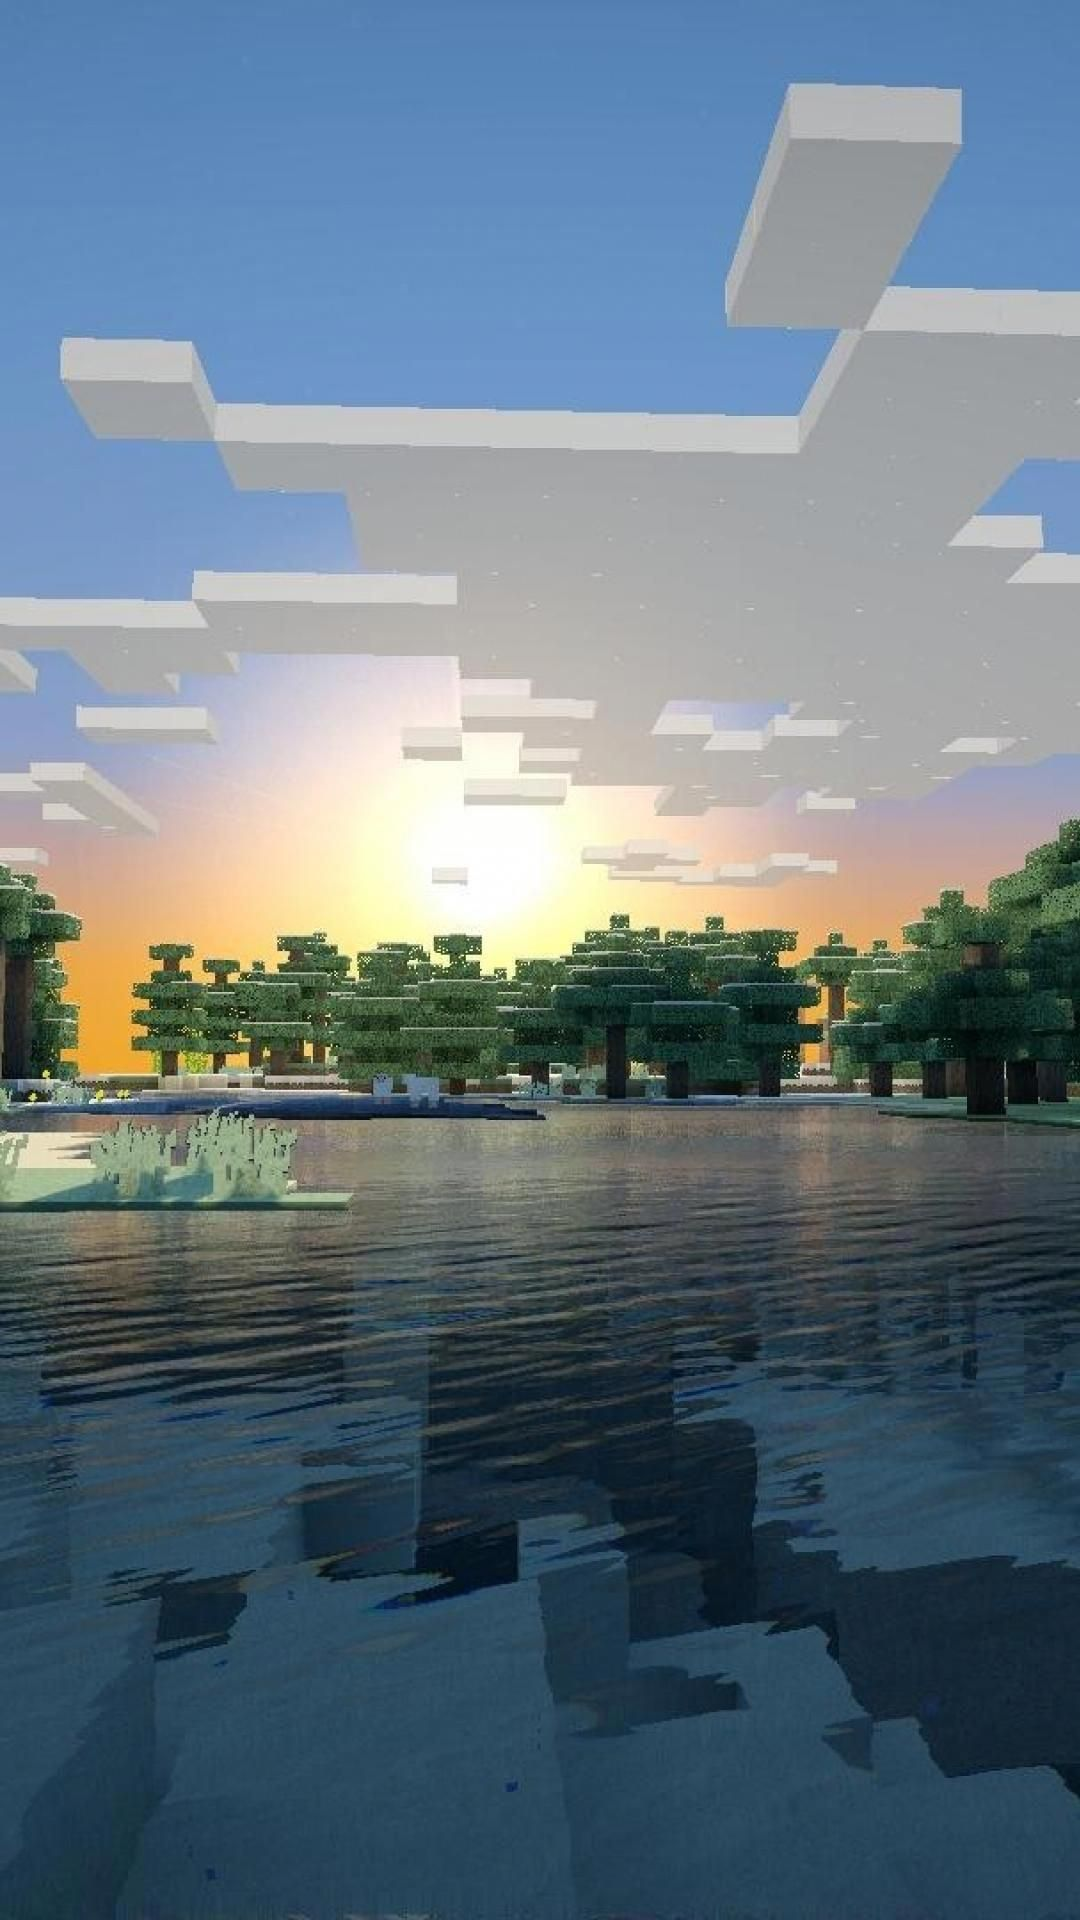 android background Android in 2020 Minecraft wallpaper